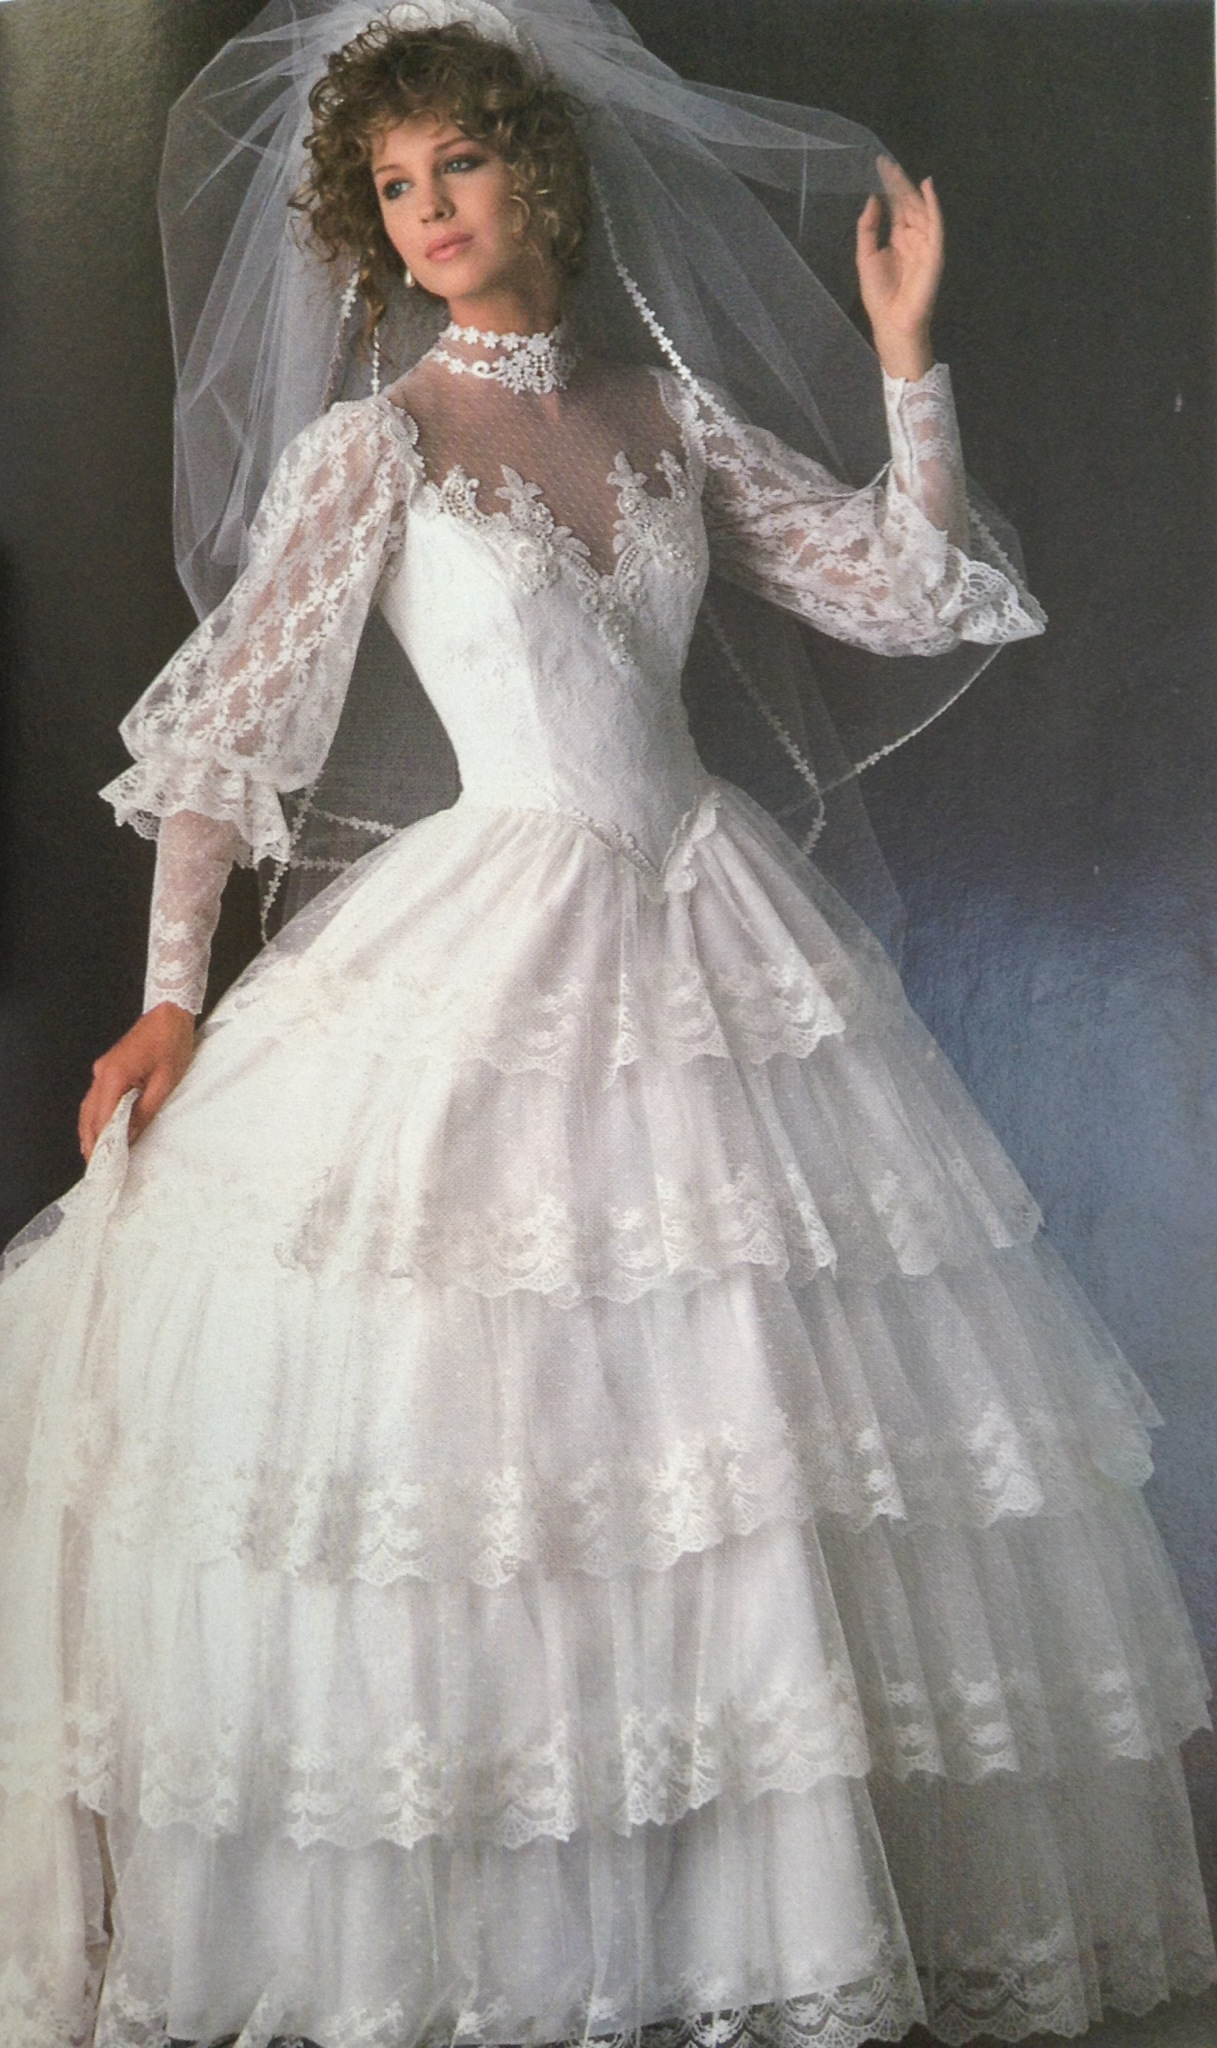 80s Fashion Exclusive! The 11 Worst Wedding Gowns & Bridesmaid ...